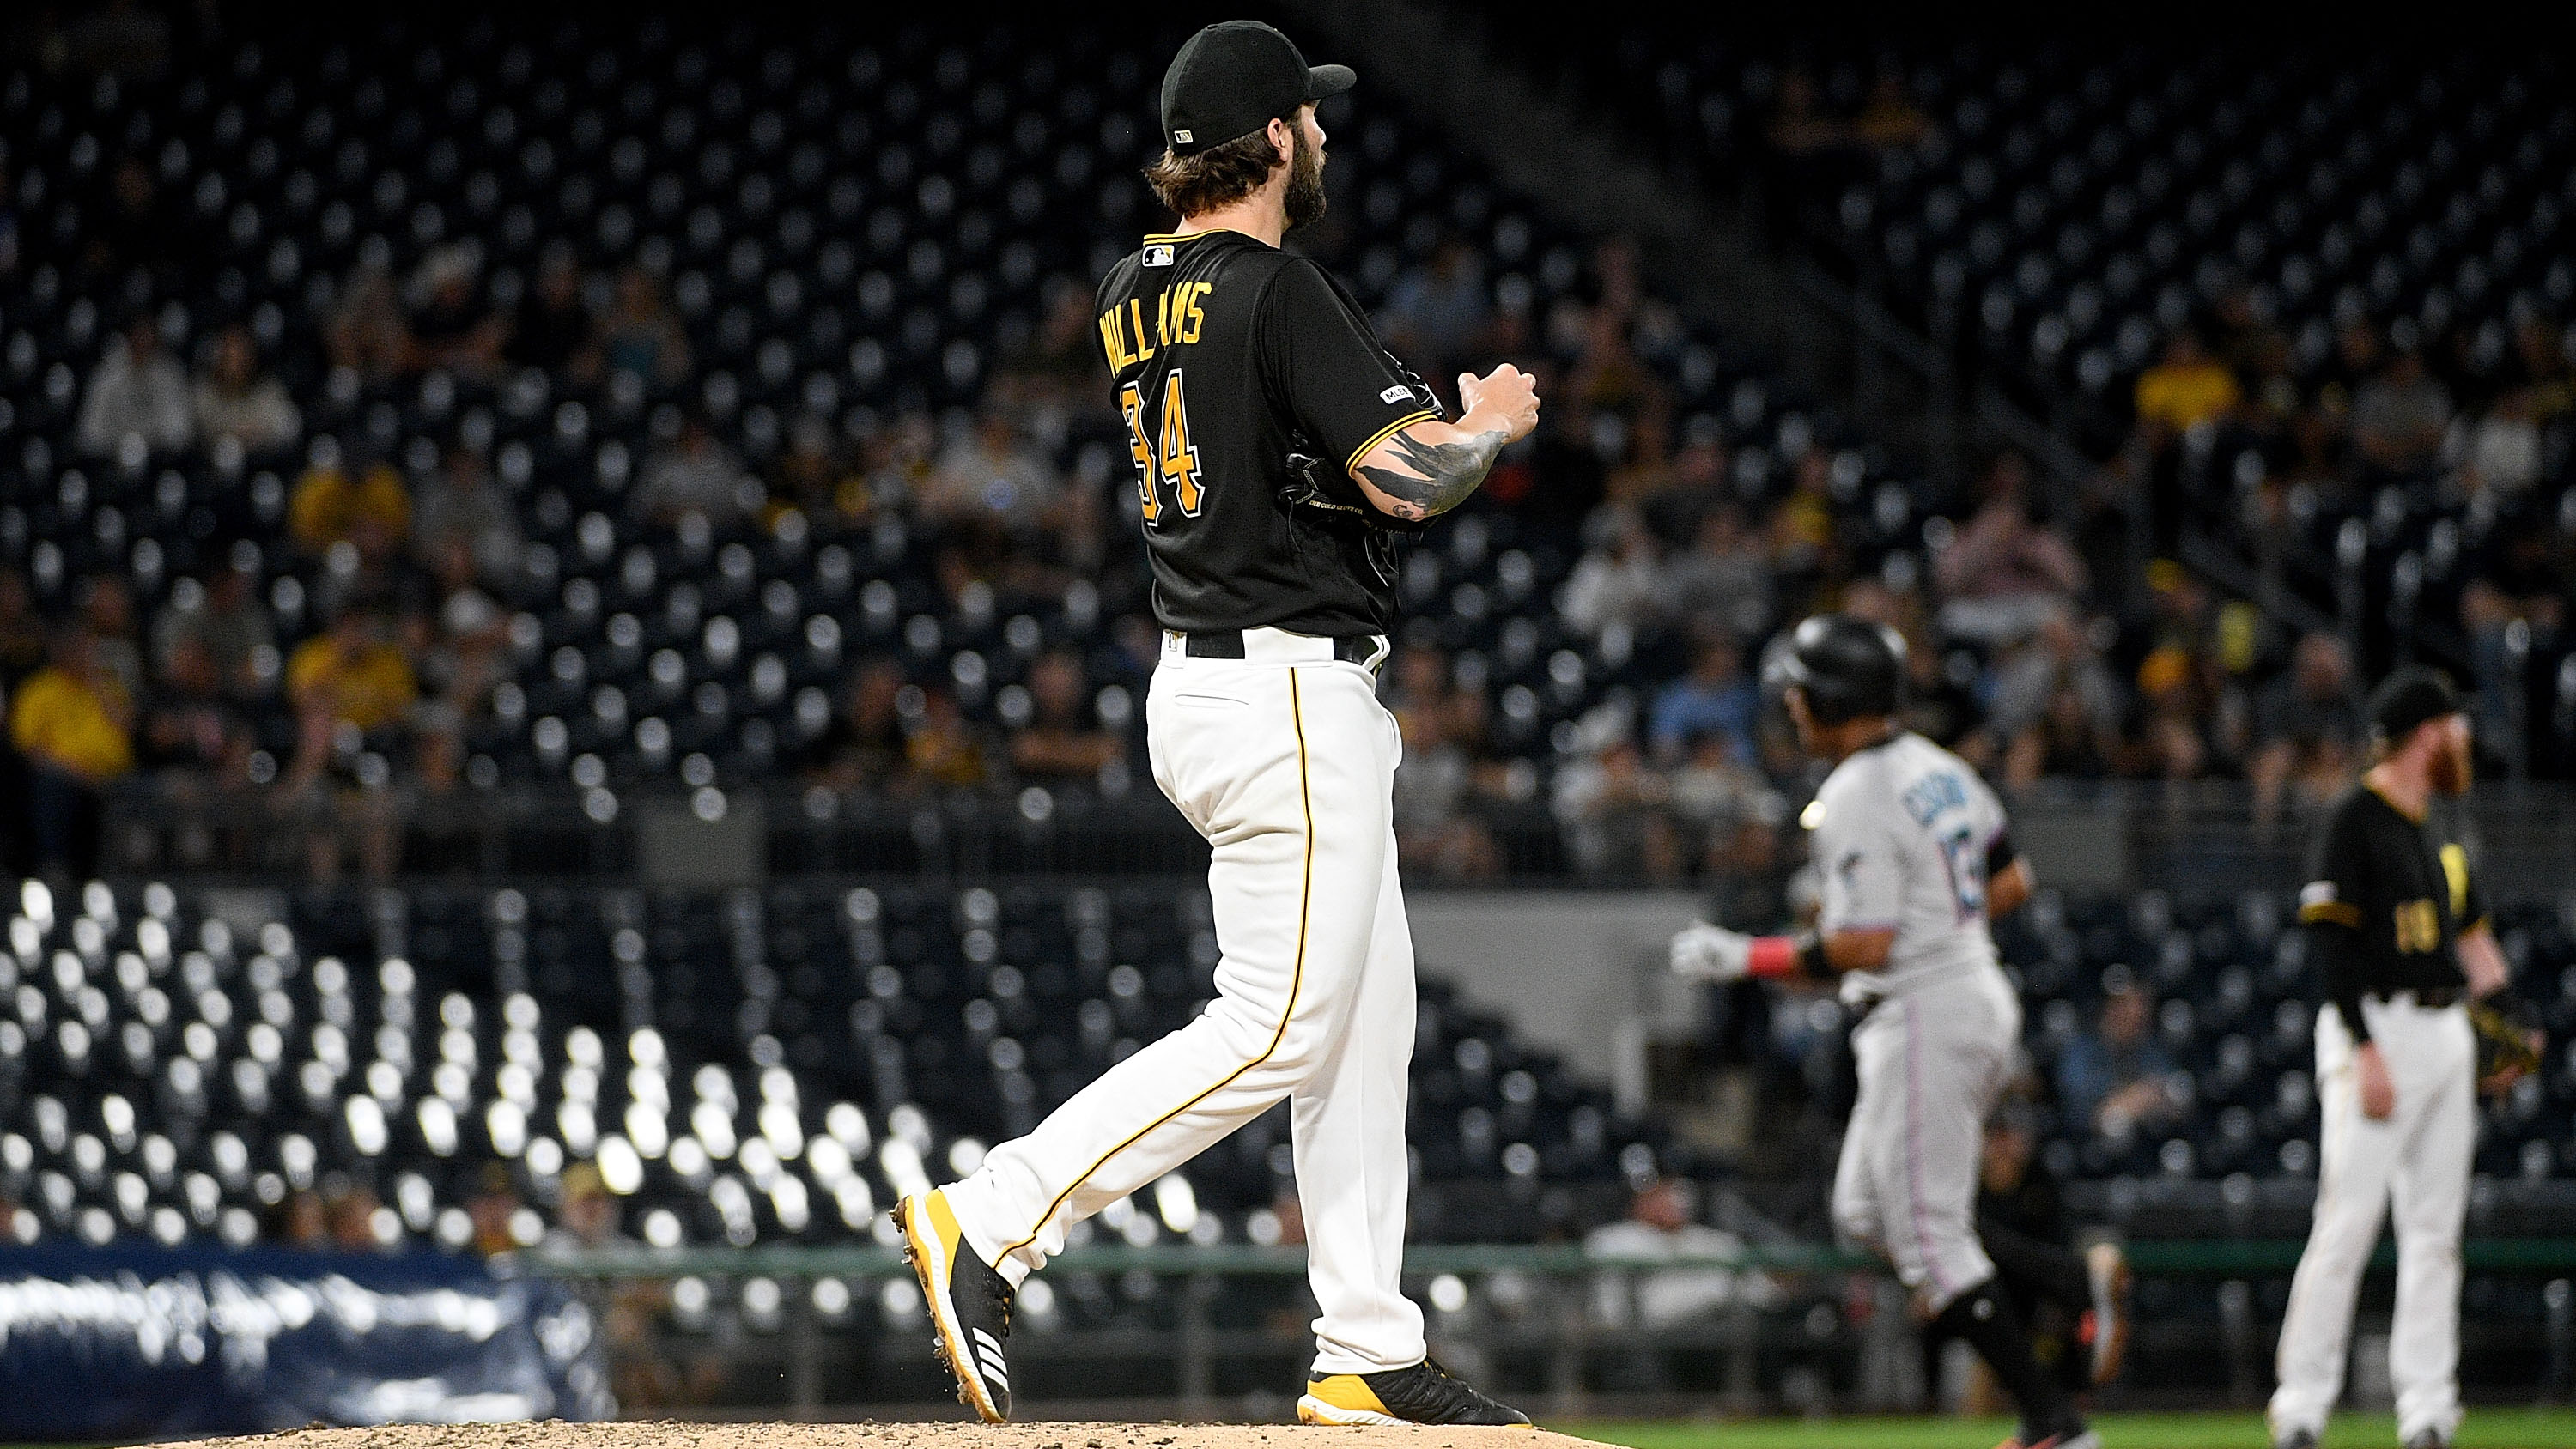 Pirates-Marlins: Attendance at PNC Park embarrassing (photos)